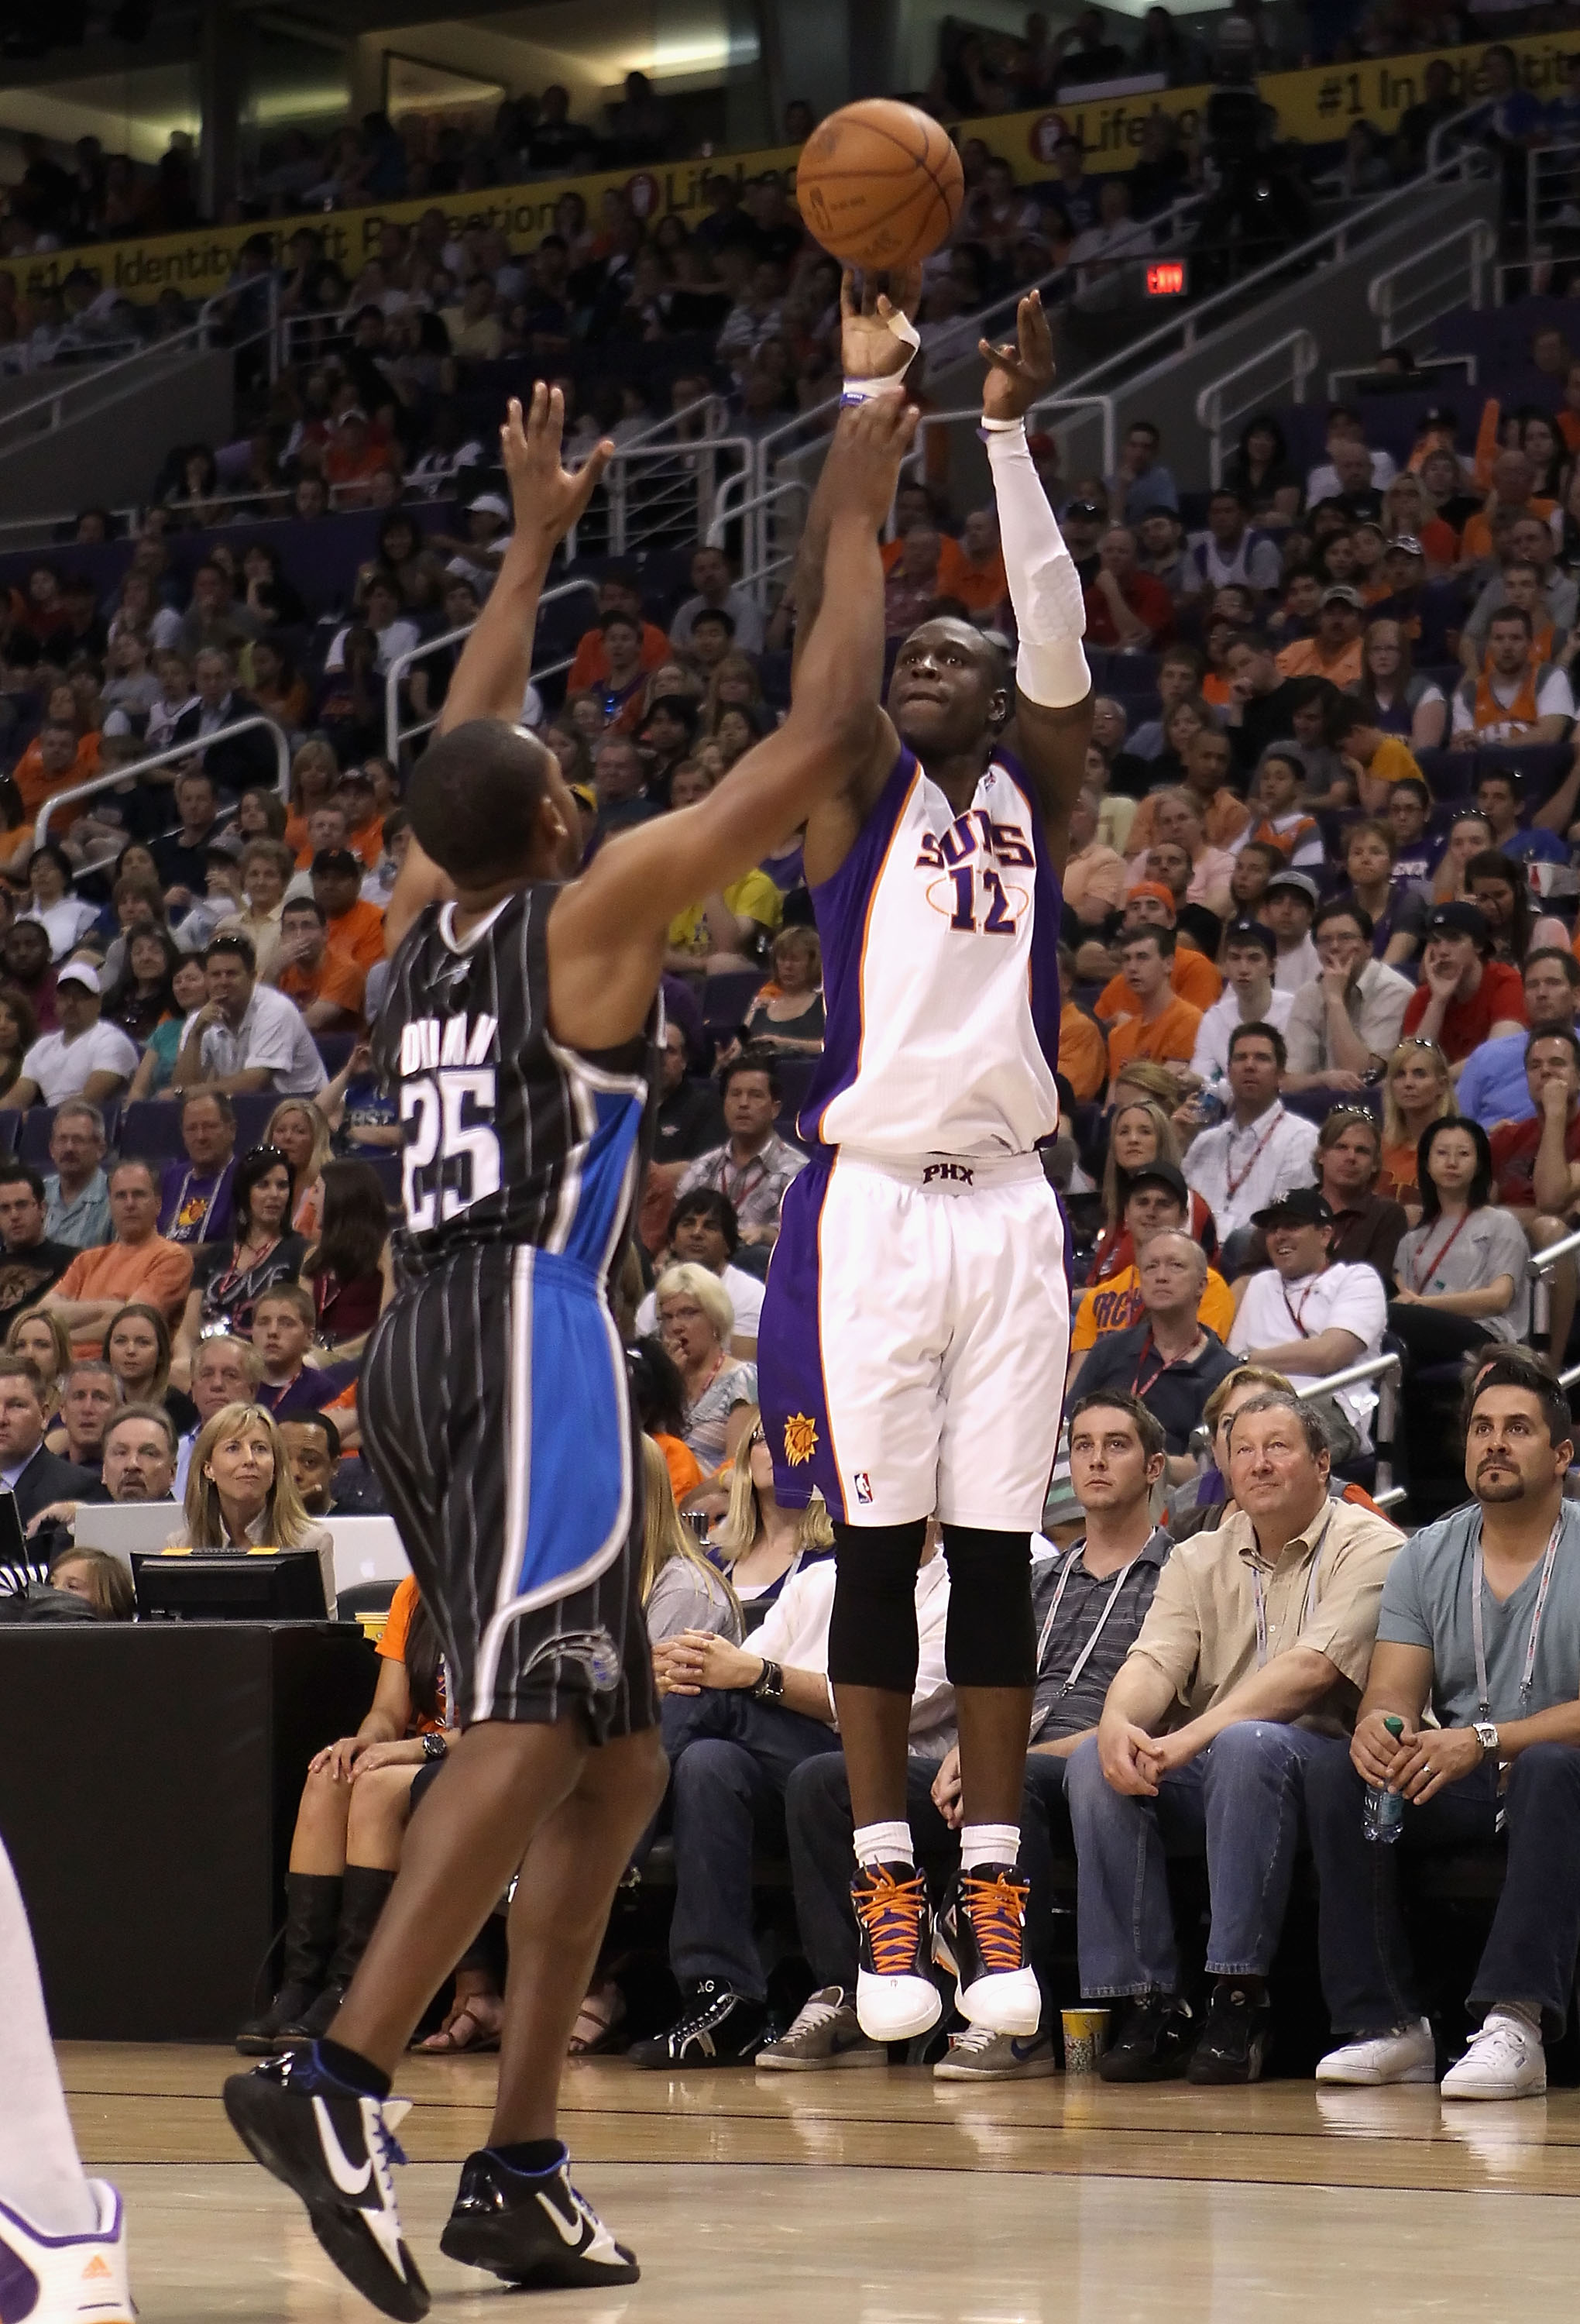 PHOENIX, AZ - MARCH 13:  Mickael Pietrus #12 of the Phoenix Suns attempts a three point shot over Chris Duhon #25 of the Orlando Magic during the NBA game at US Airways Center on March 13, 2011 in Phoenix, Arizona. The Magic defeated the Suns 111-88. NOTE